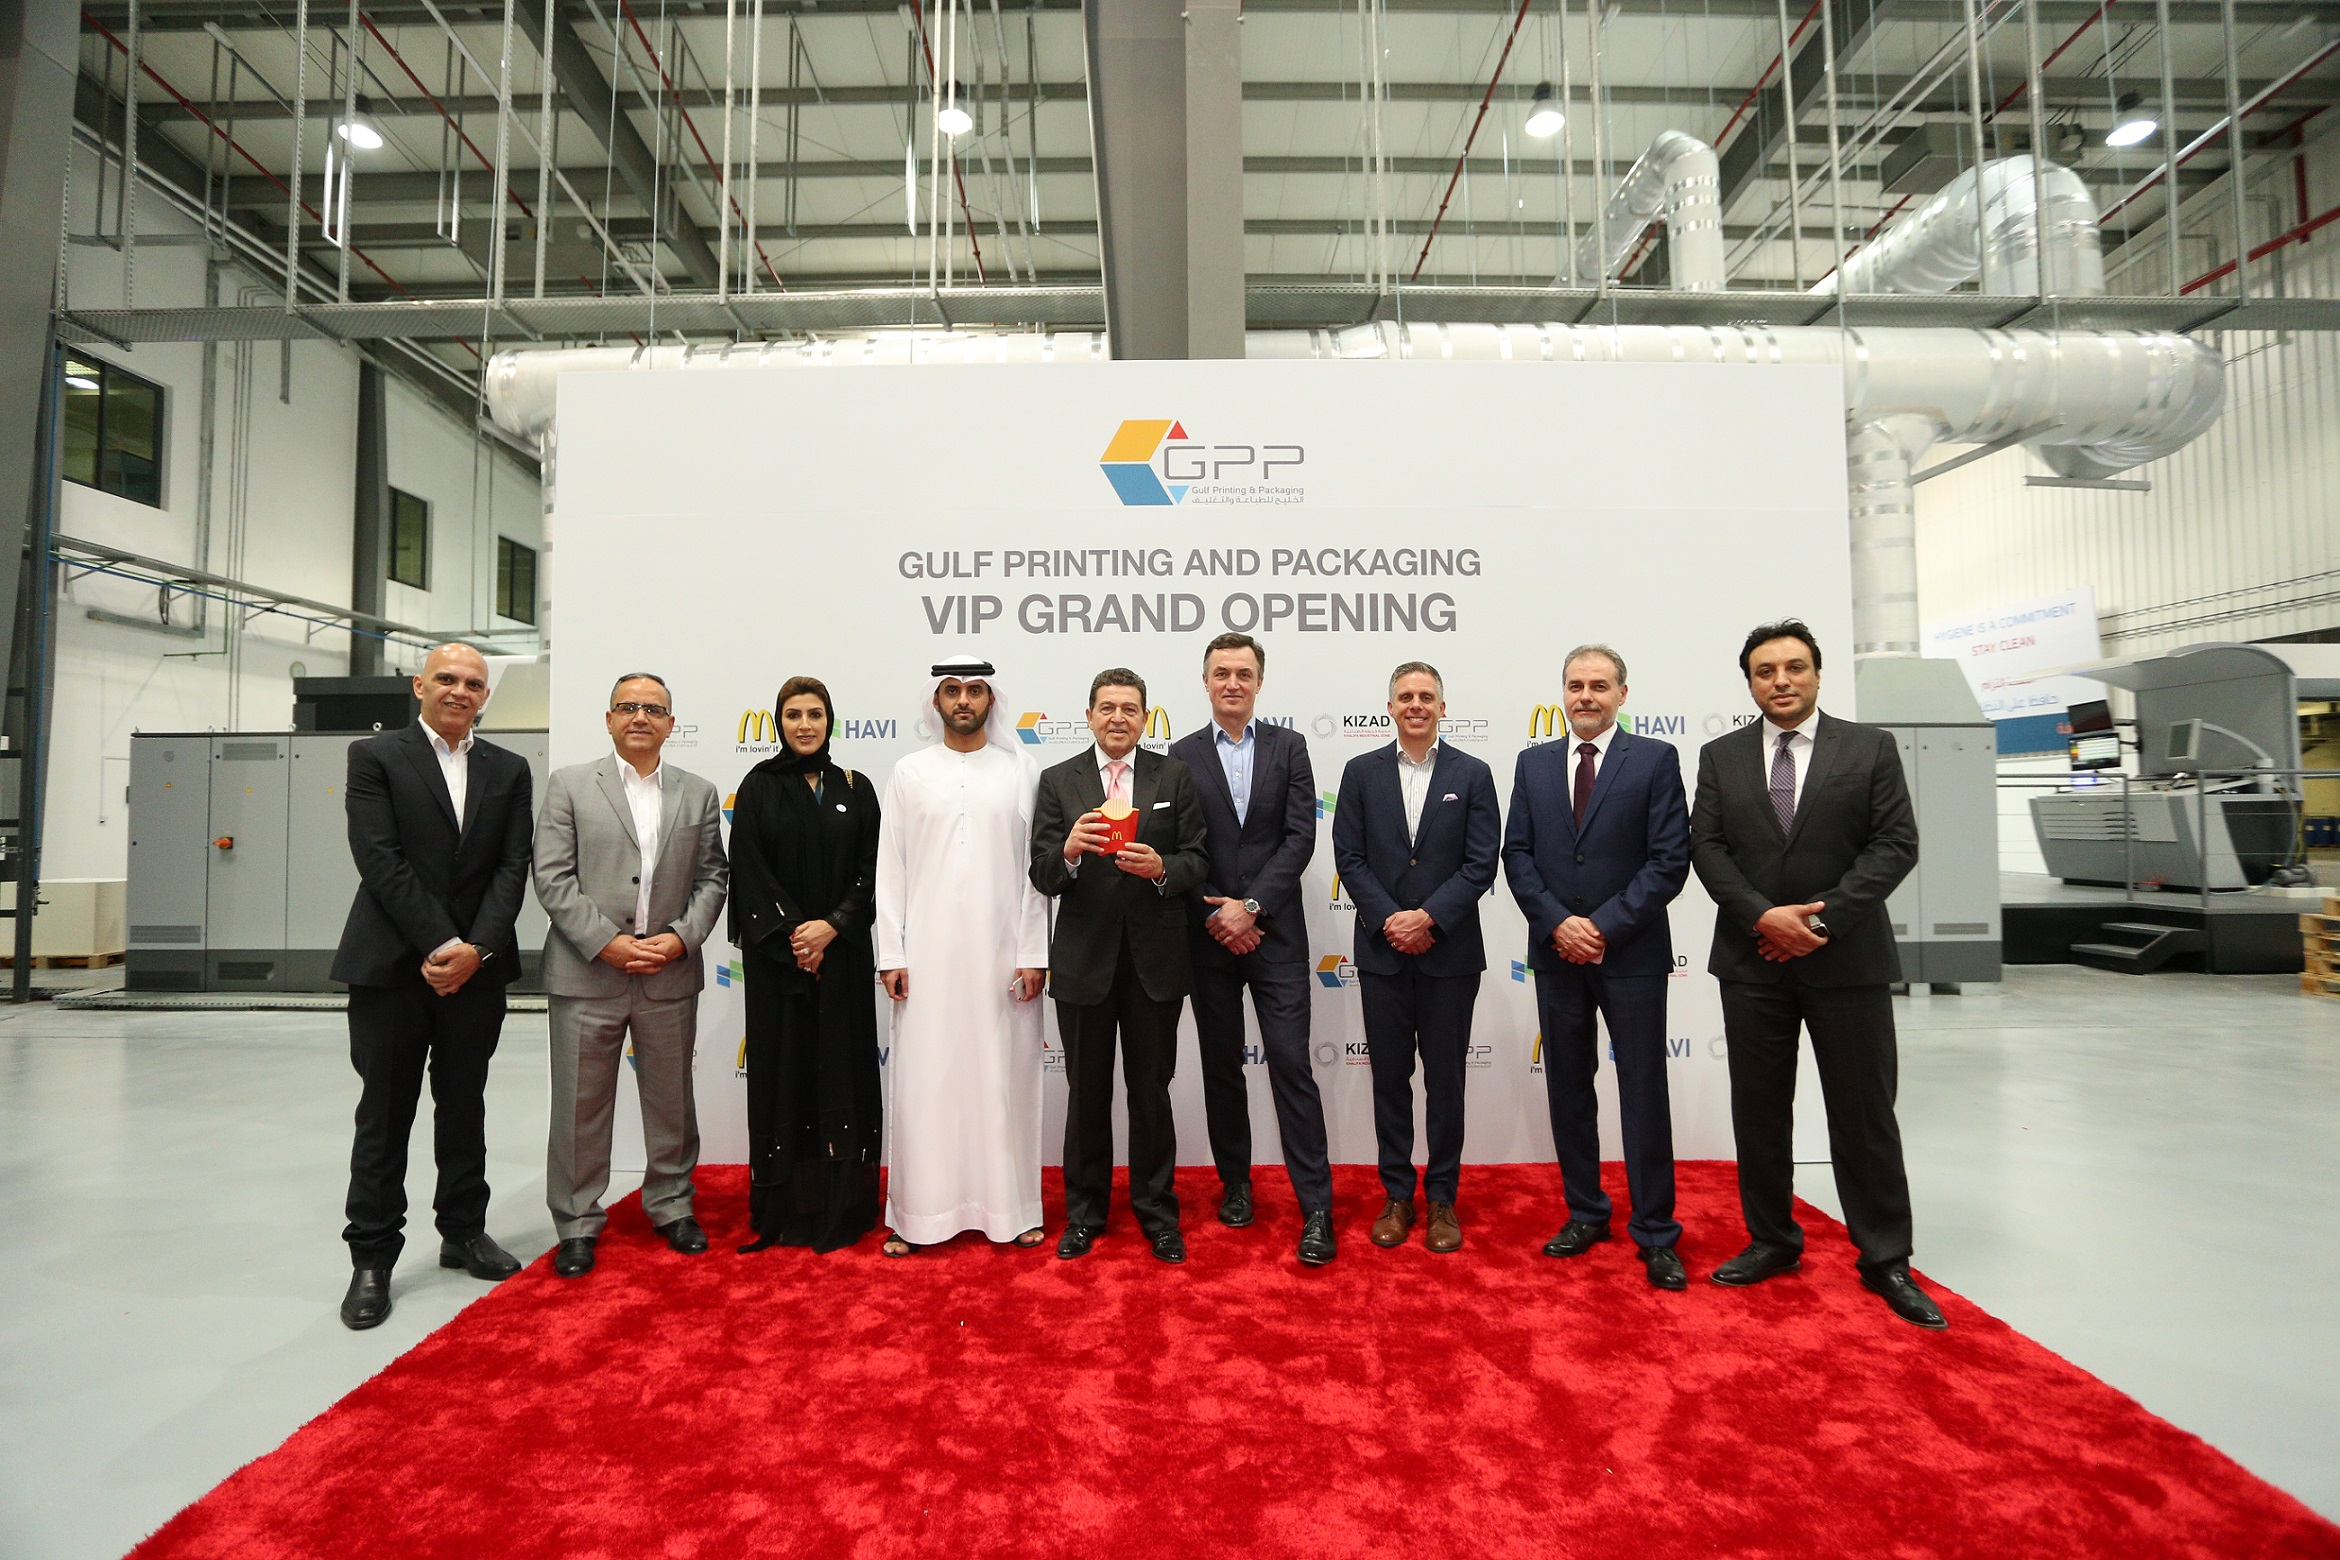 Latest News and Press Releases - Khalifa Industrial Zone Abu Dhabi